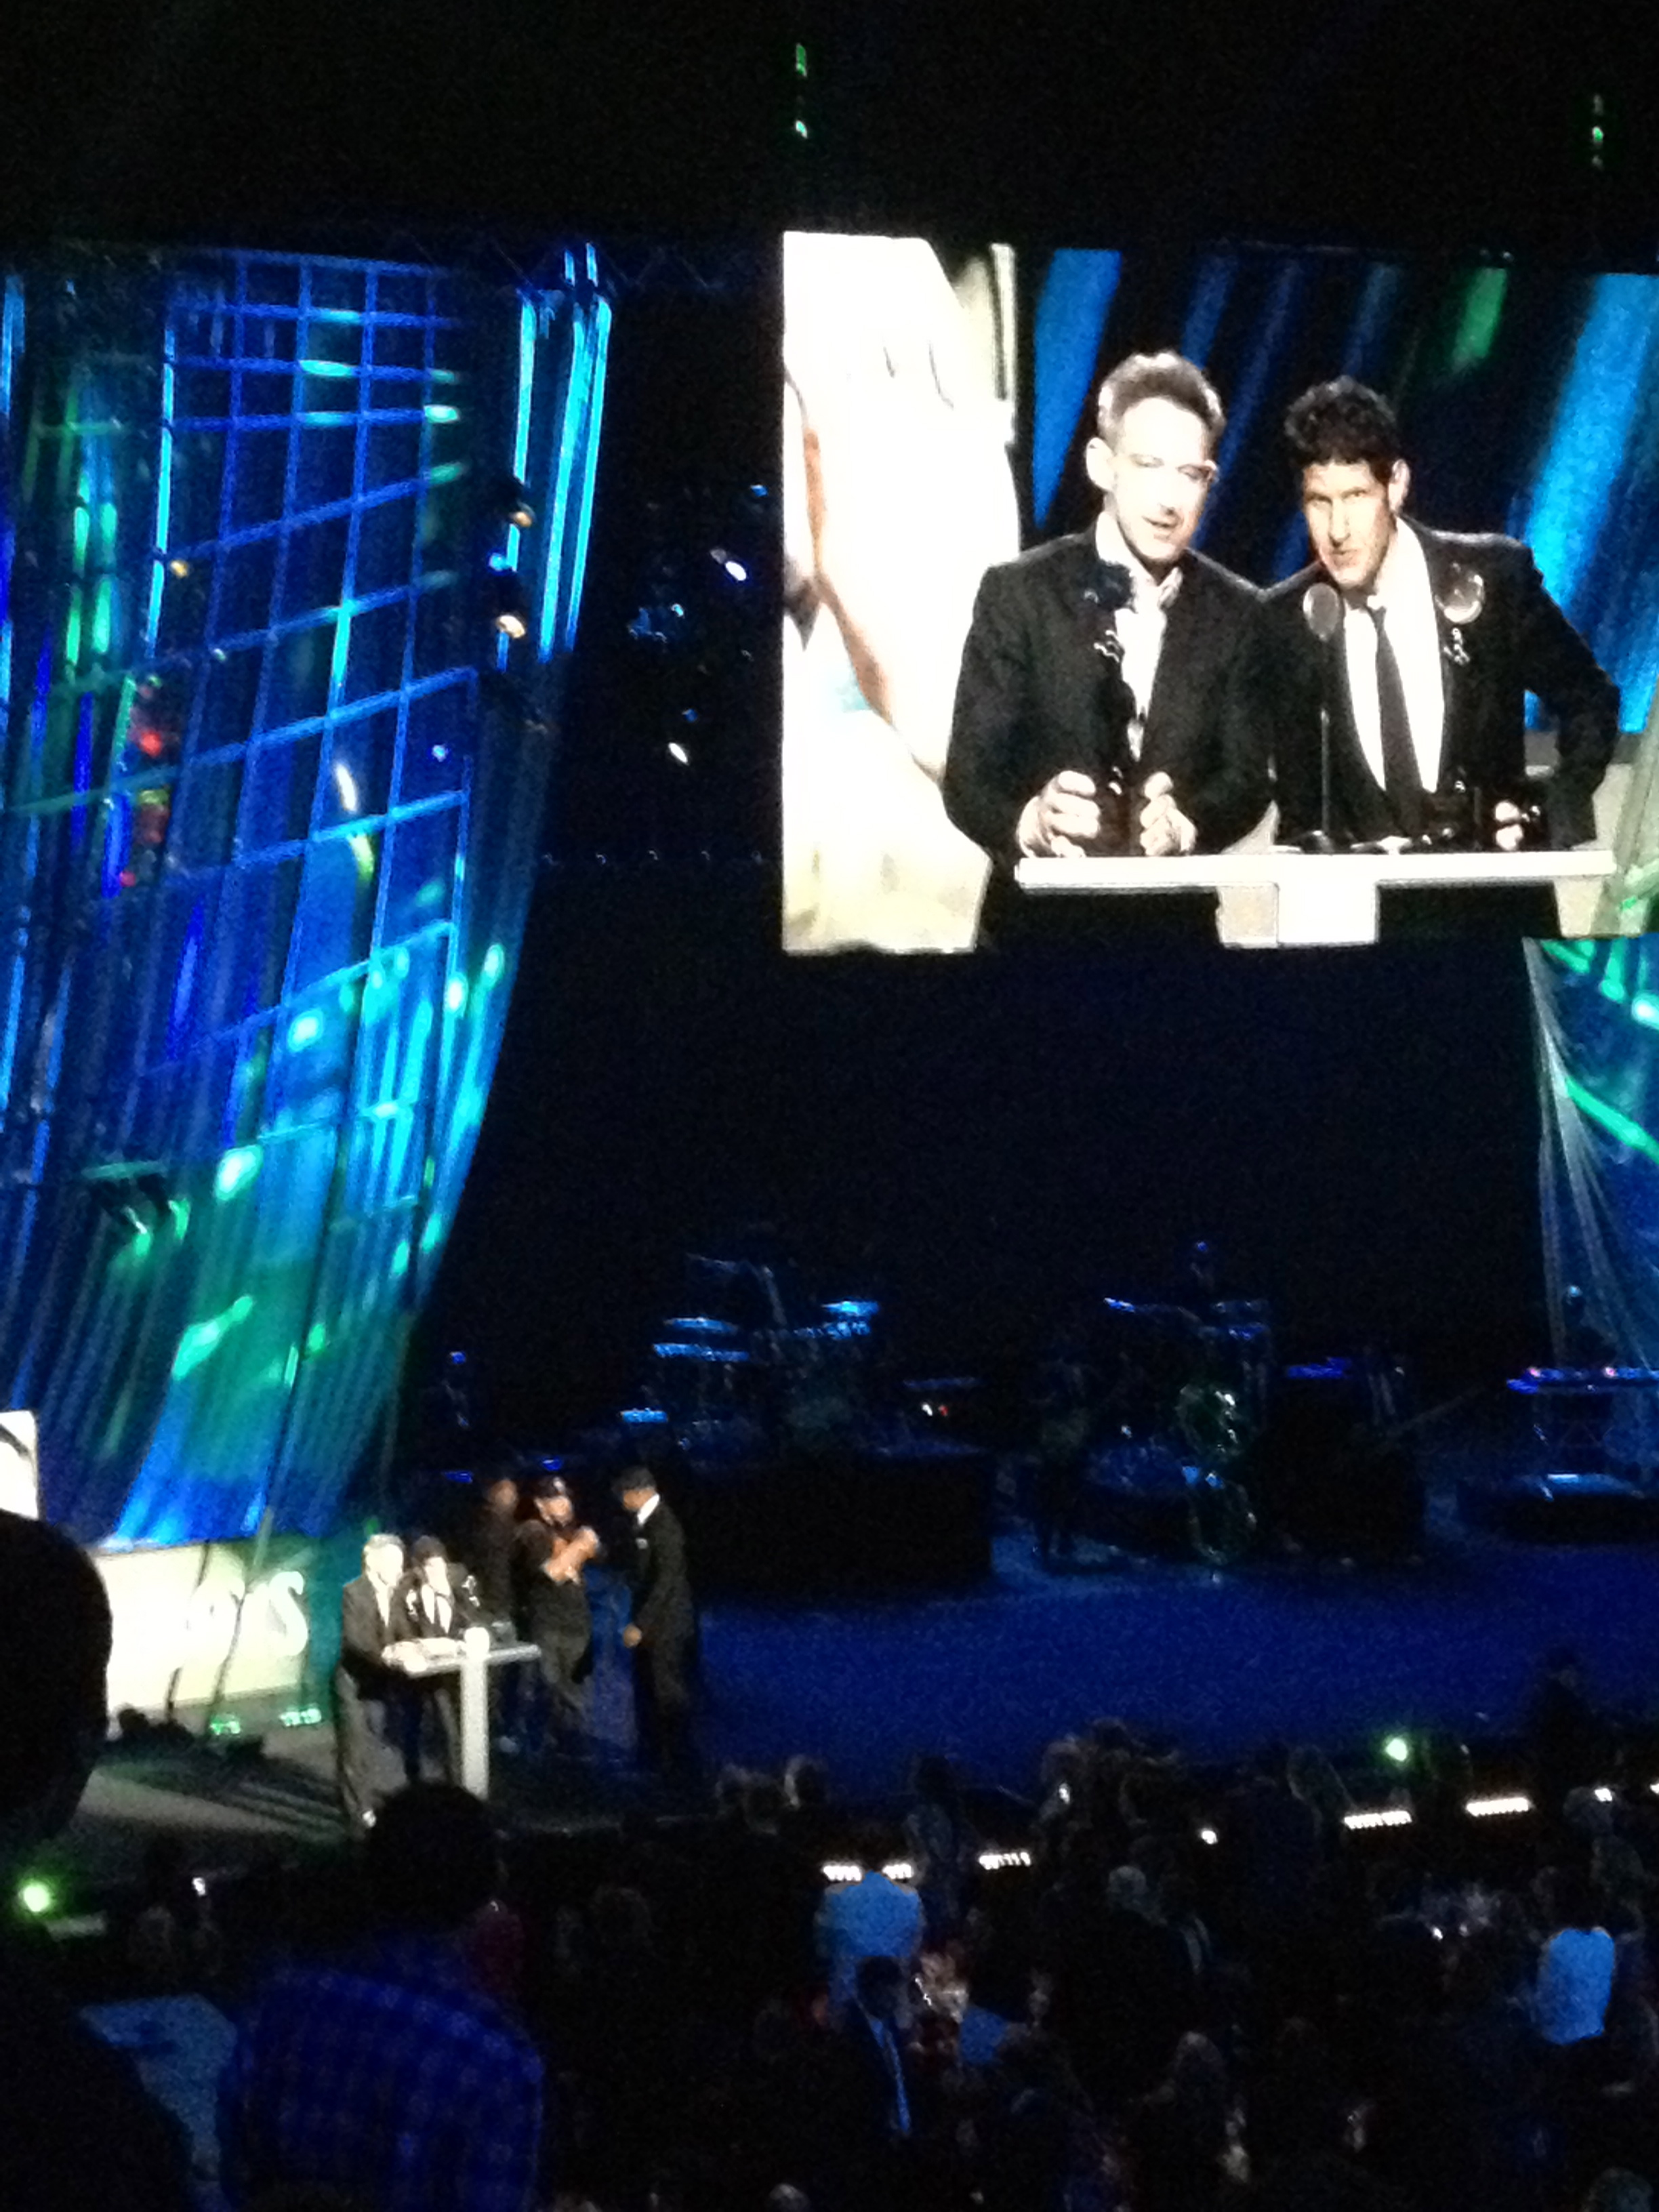 A fan's view of the induction ceremony at the Rock and Roll Hall of Fame. (Photo by Dave Rothkopf)